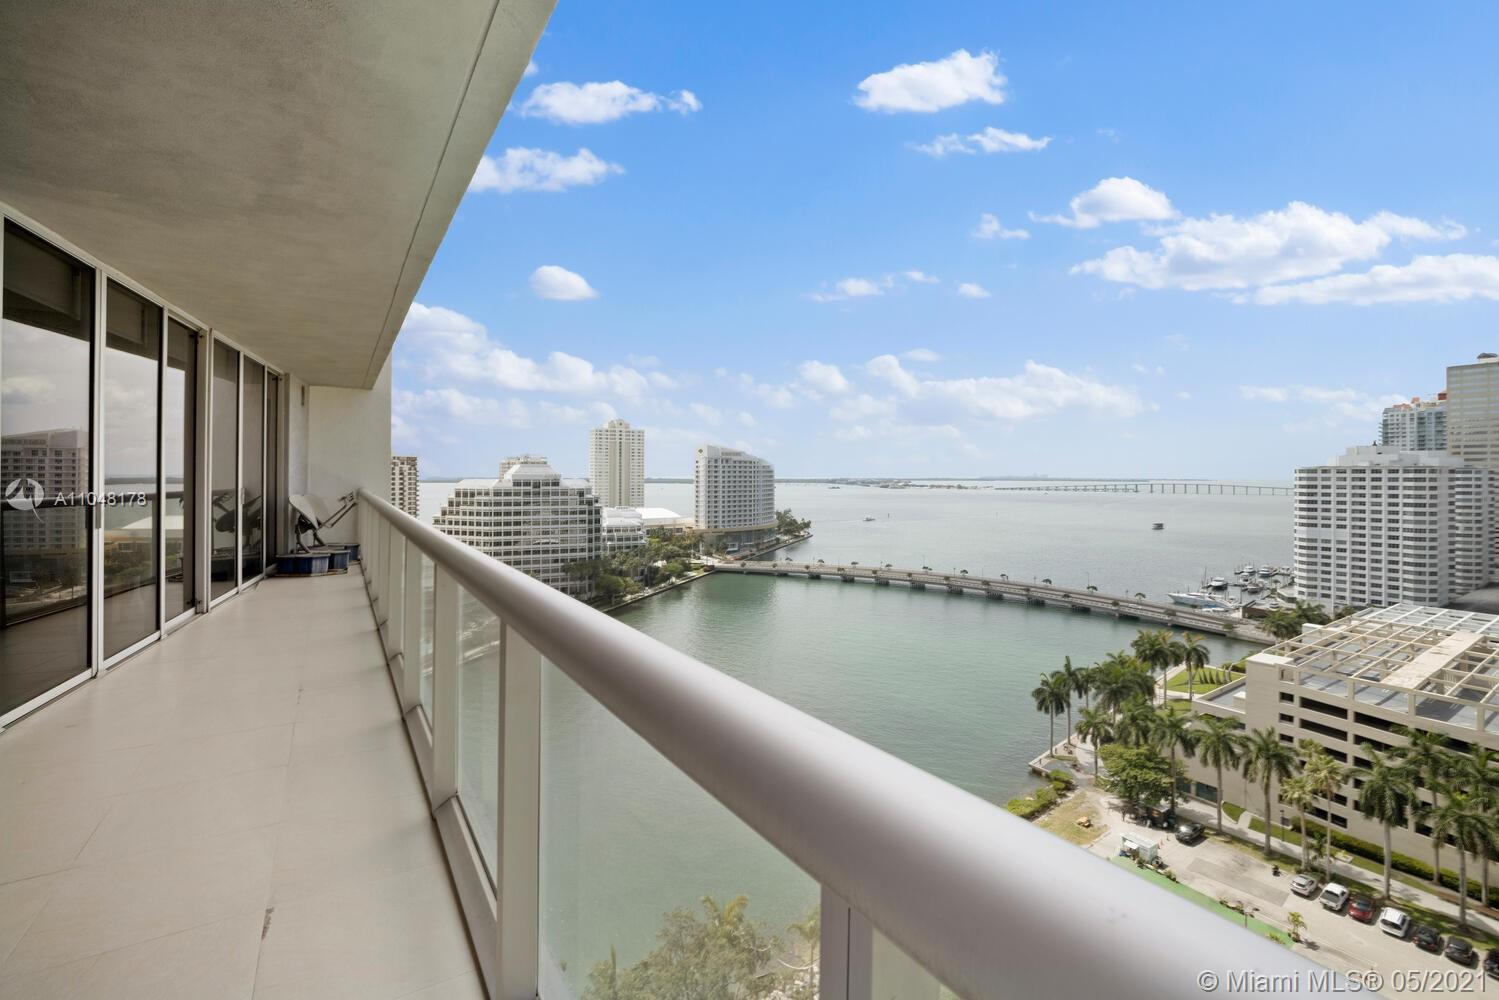 Pristine 2 Bedroom + Den/Media Room, 2 Bathrooms boasts 1,518 sq. ft. of living space & has sweeping water views from anywhere in the unit overlooking the spectacular waterfront bay. Located in Tower II of ICON BRICKELL. Have access to the best amenities in Miami such as the world-famous pool deck, 5-star spa, state of the art gym, & two of the top restaurants in Miami. A couple of blocks away of Brickell City Centre. Price is firm. It is vacant and Move-in Ready!